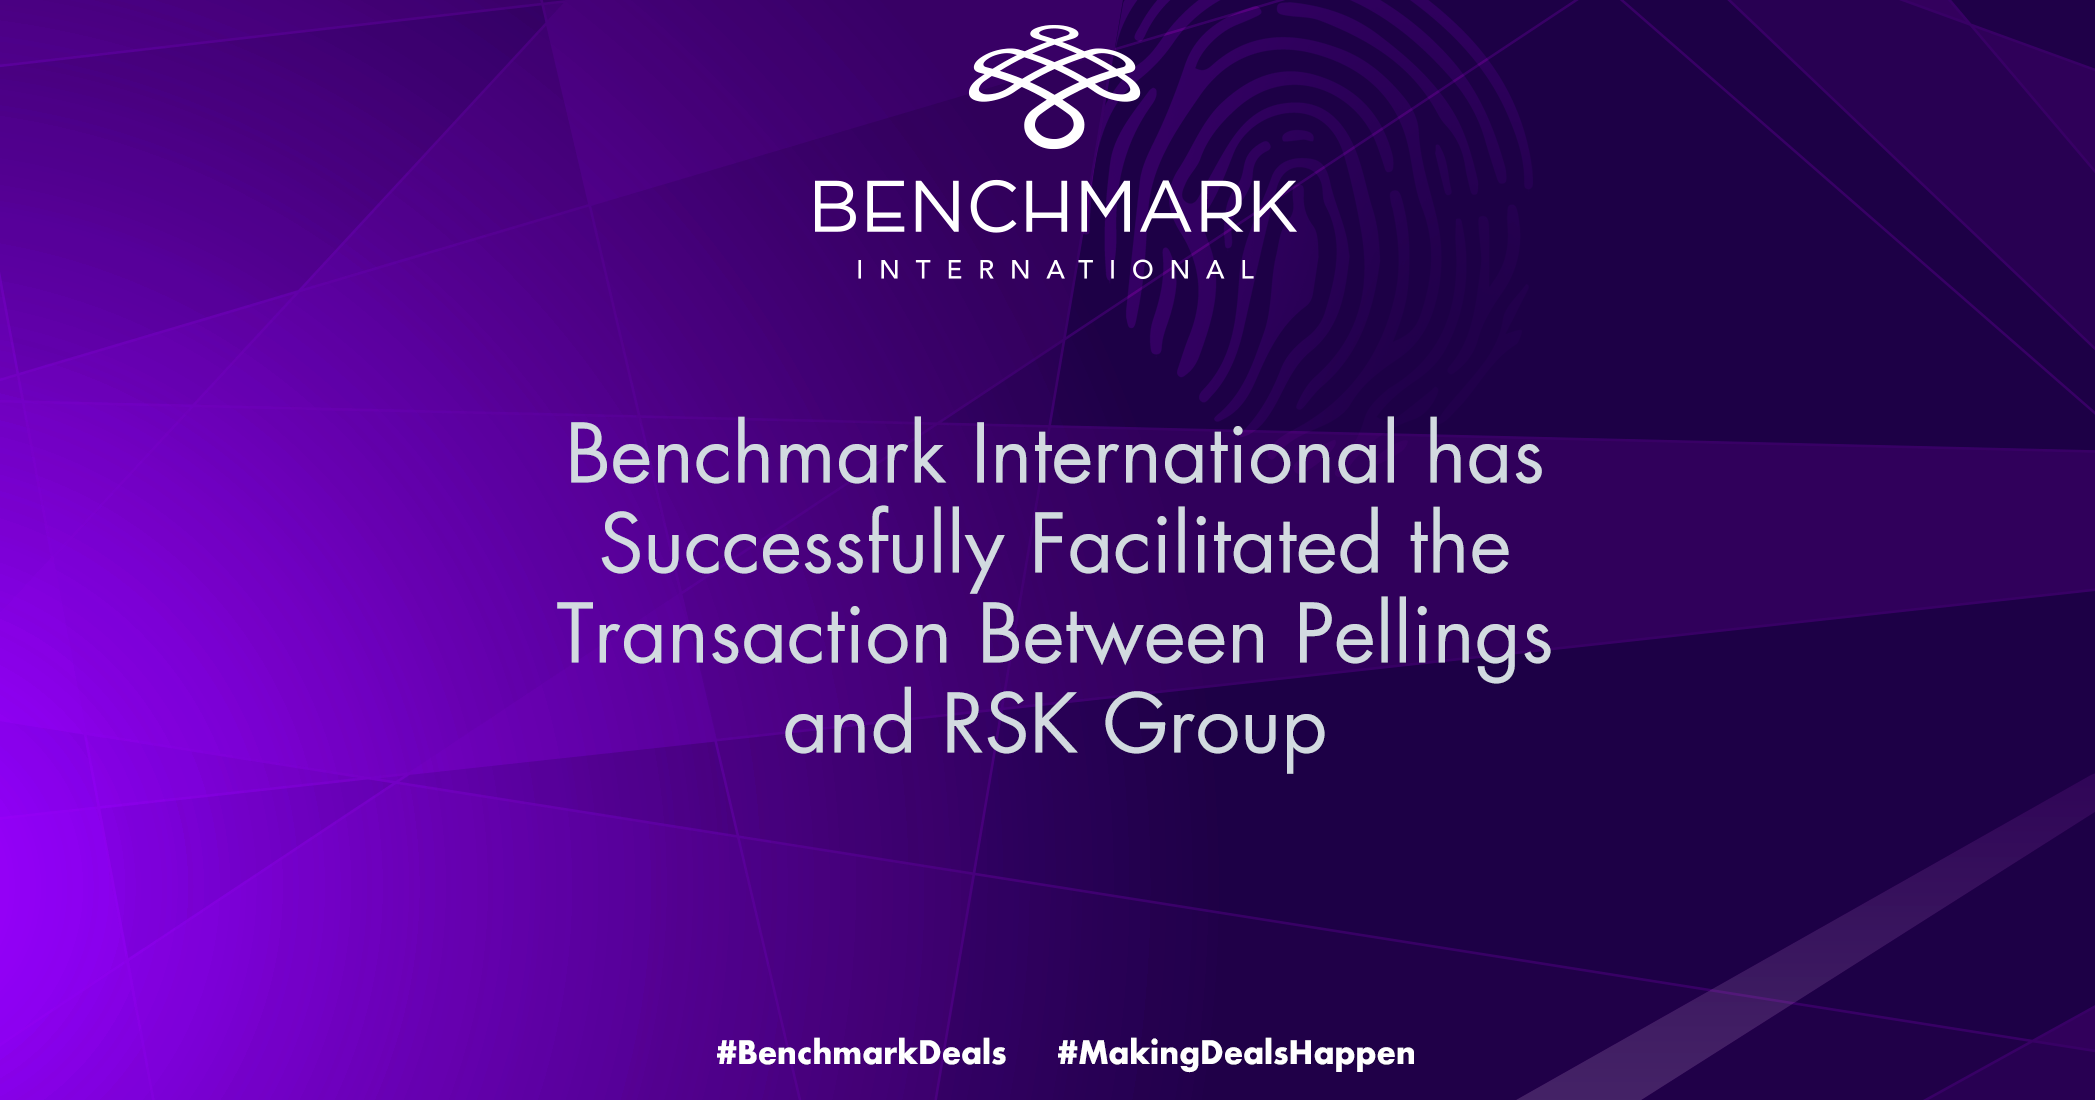 Benchmark International has Successfully Facilitated the Transaction Between Pellings and RSK Group